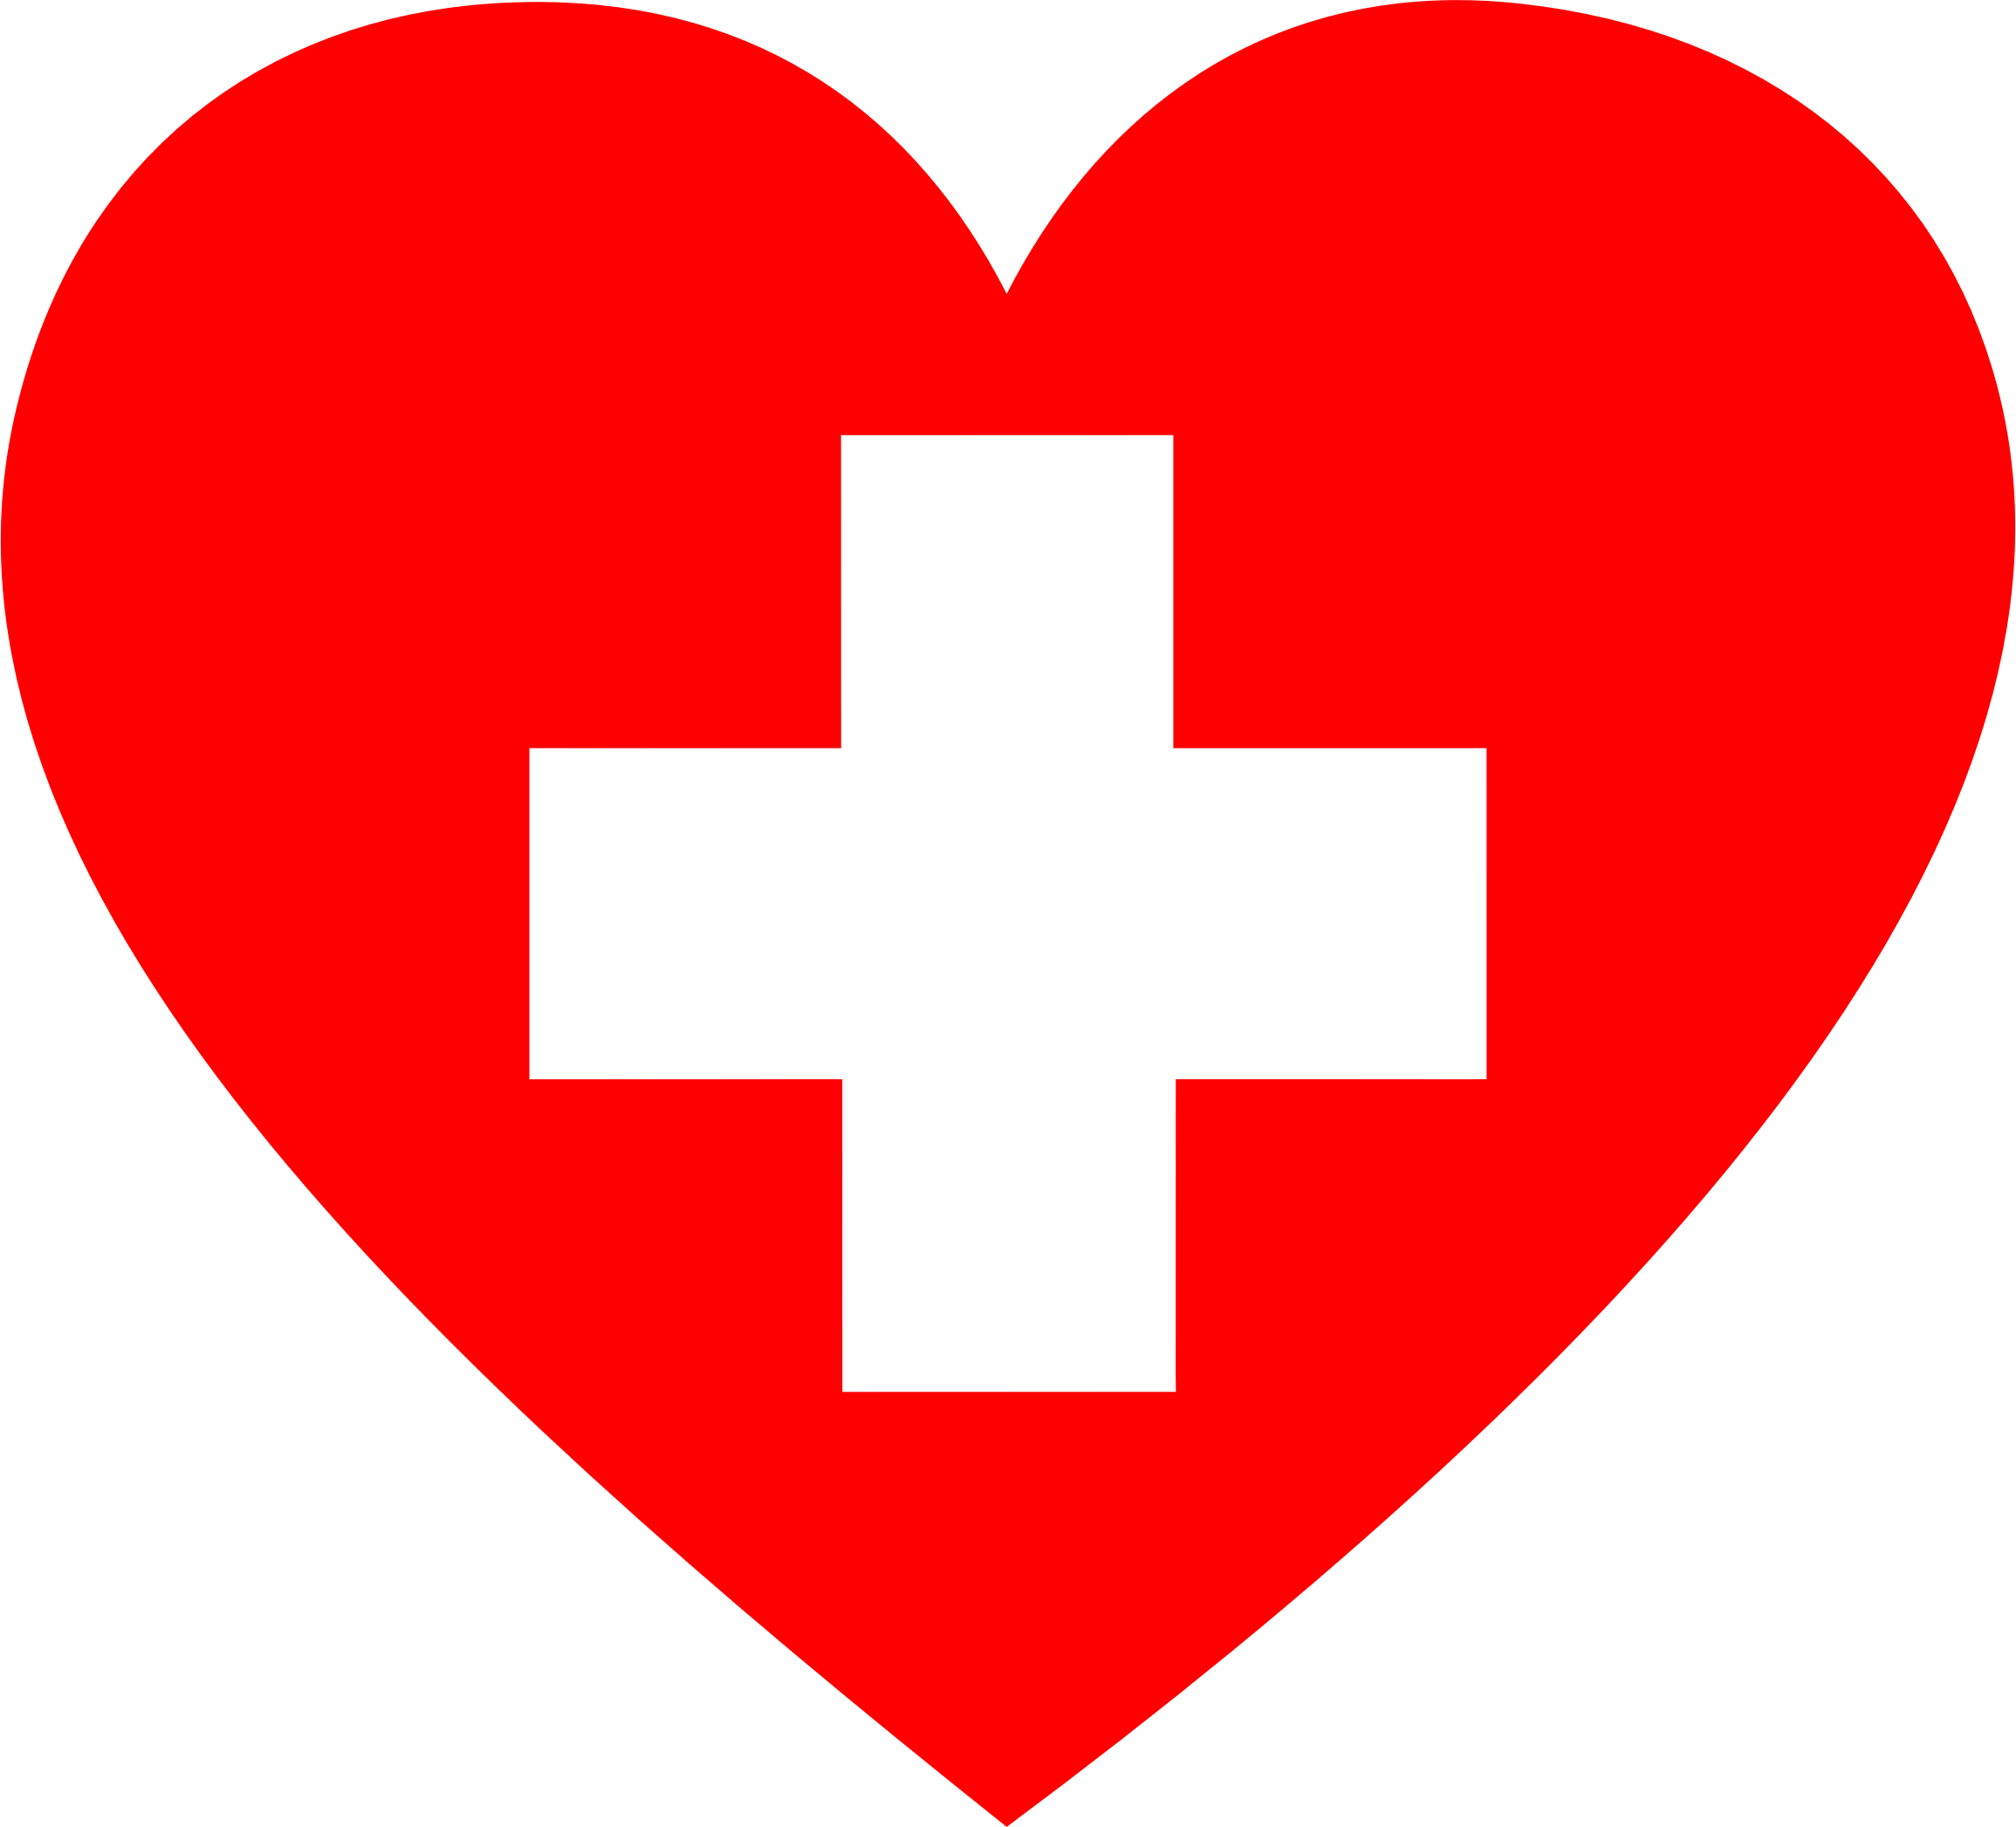 First aid heart big. Heartbeat clipart medical